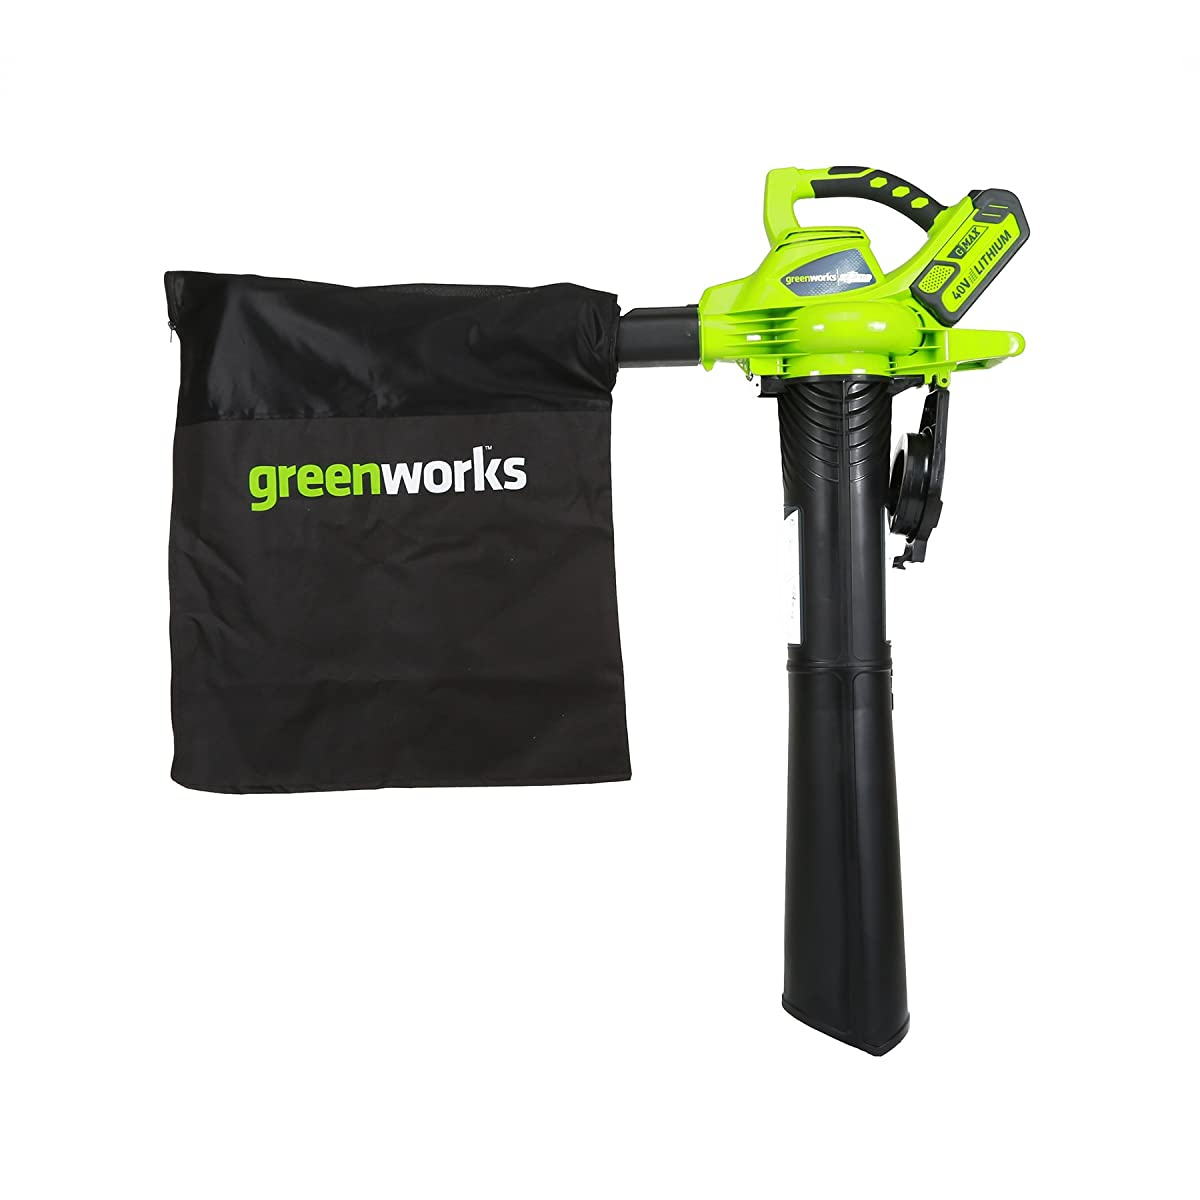 Greenworks 40V 185 MPH Variable Speed Cordless Blower Vacuum, 4.0 AH Battery Included 24322